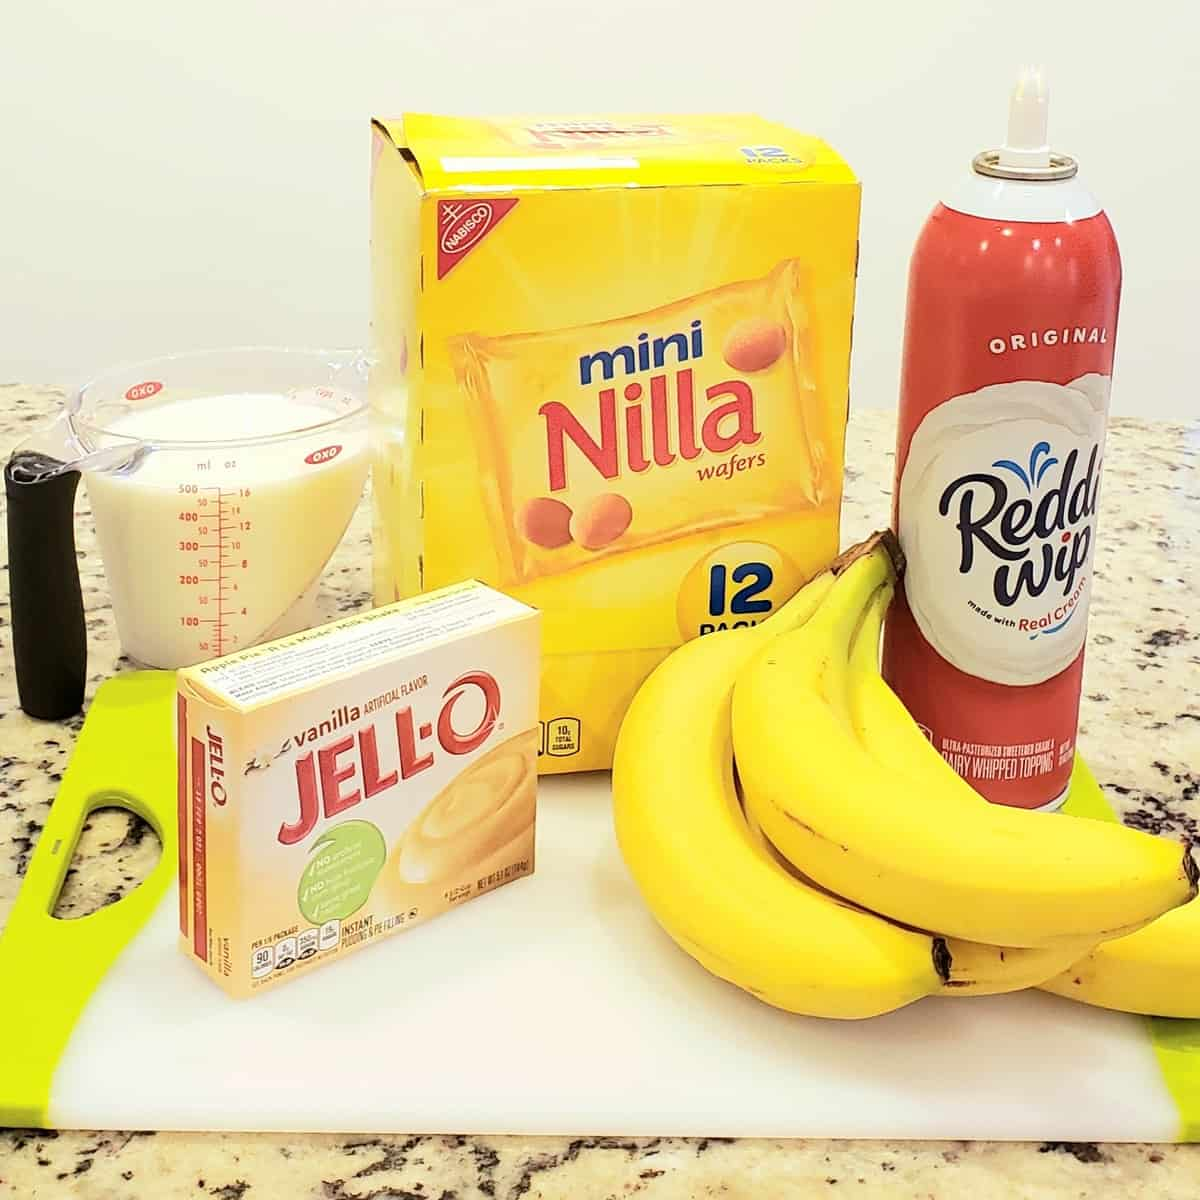 Ingredients on a white cutting board: bananas, Redi whip, Nilla wafers Jello pudding milk